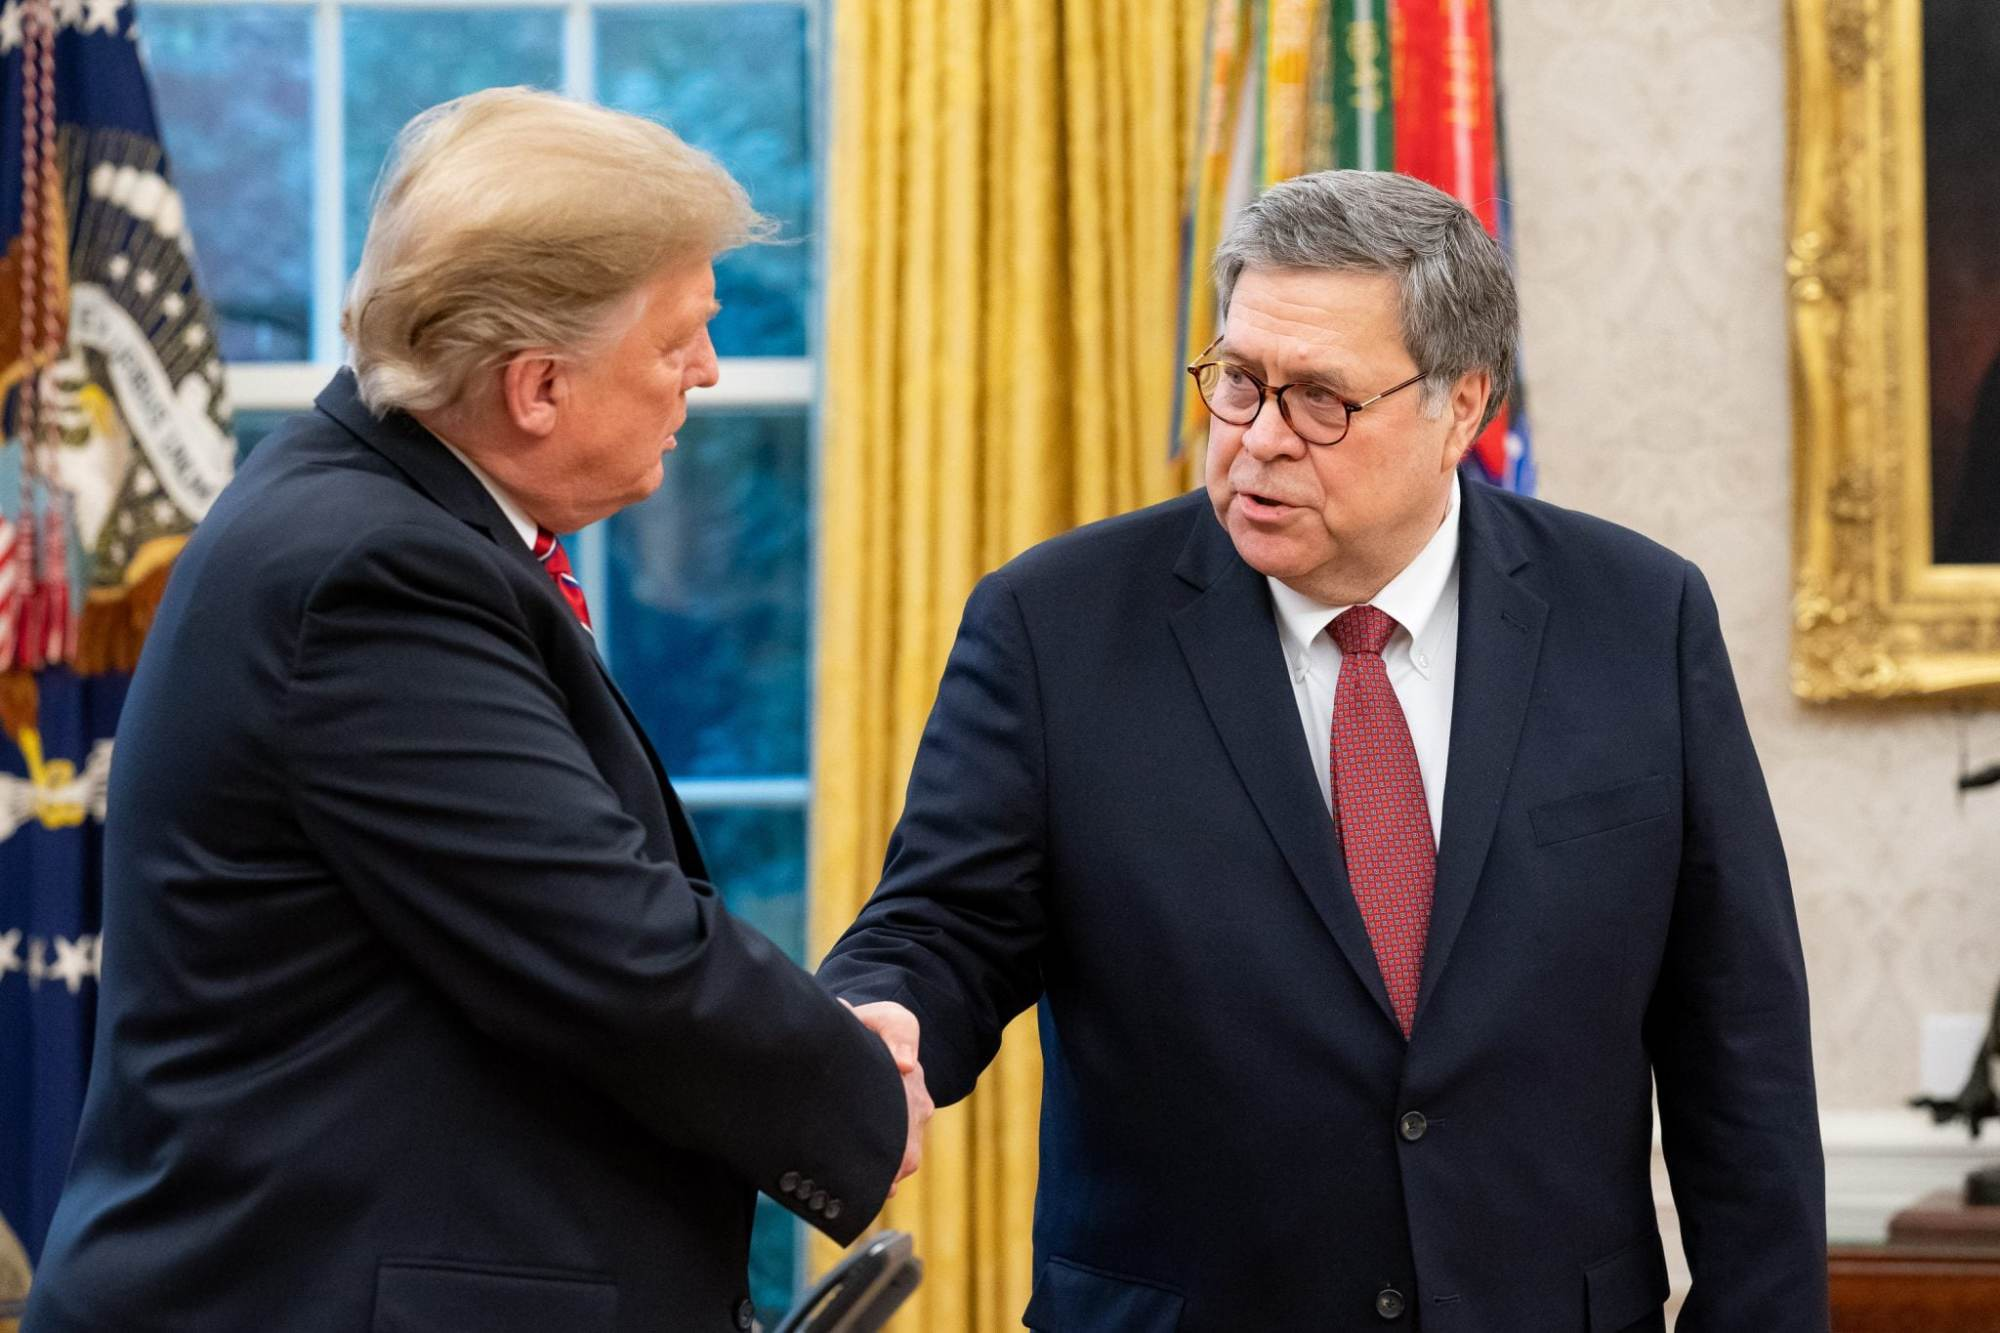 For Spying Allegation, AG Barr Should Trade 'His Tortoise Shell Glasses for a Tinfoil Hat'